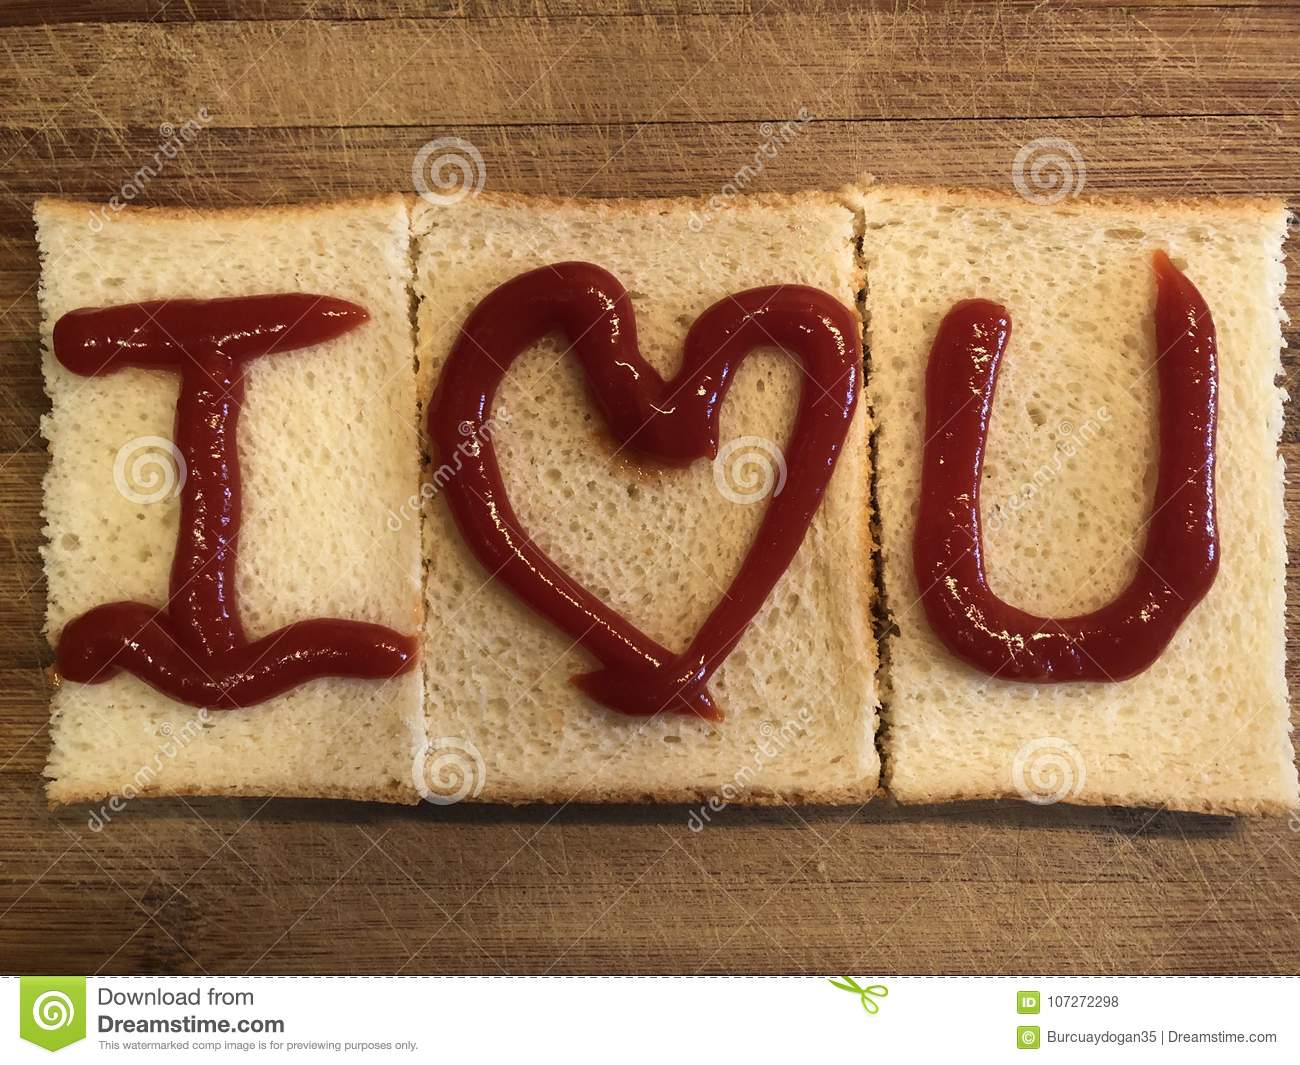 I Love U By Bread On The Wooden Cutting Board Stock Photo Image